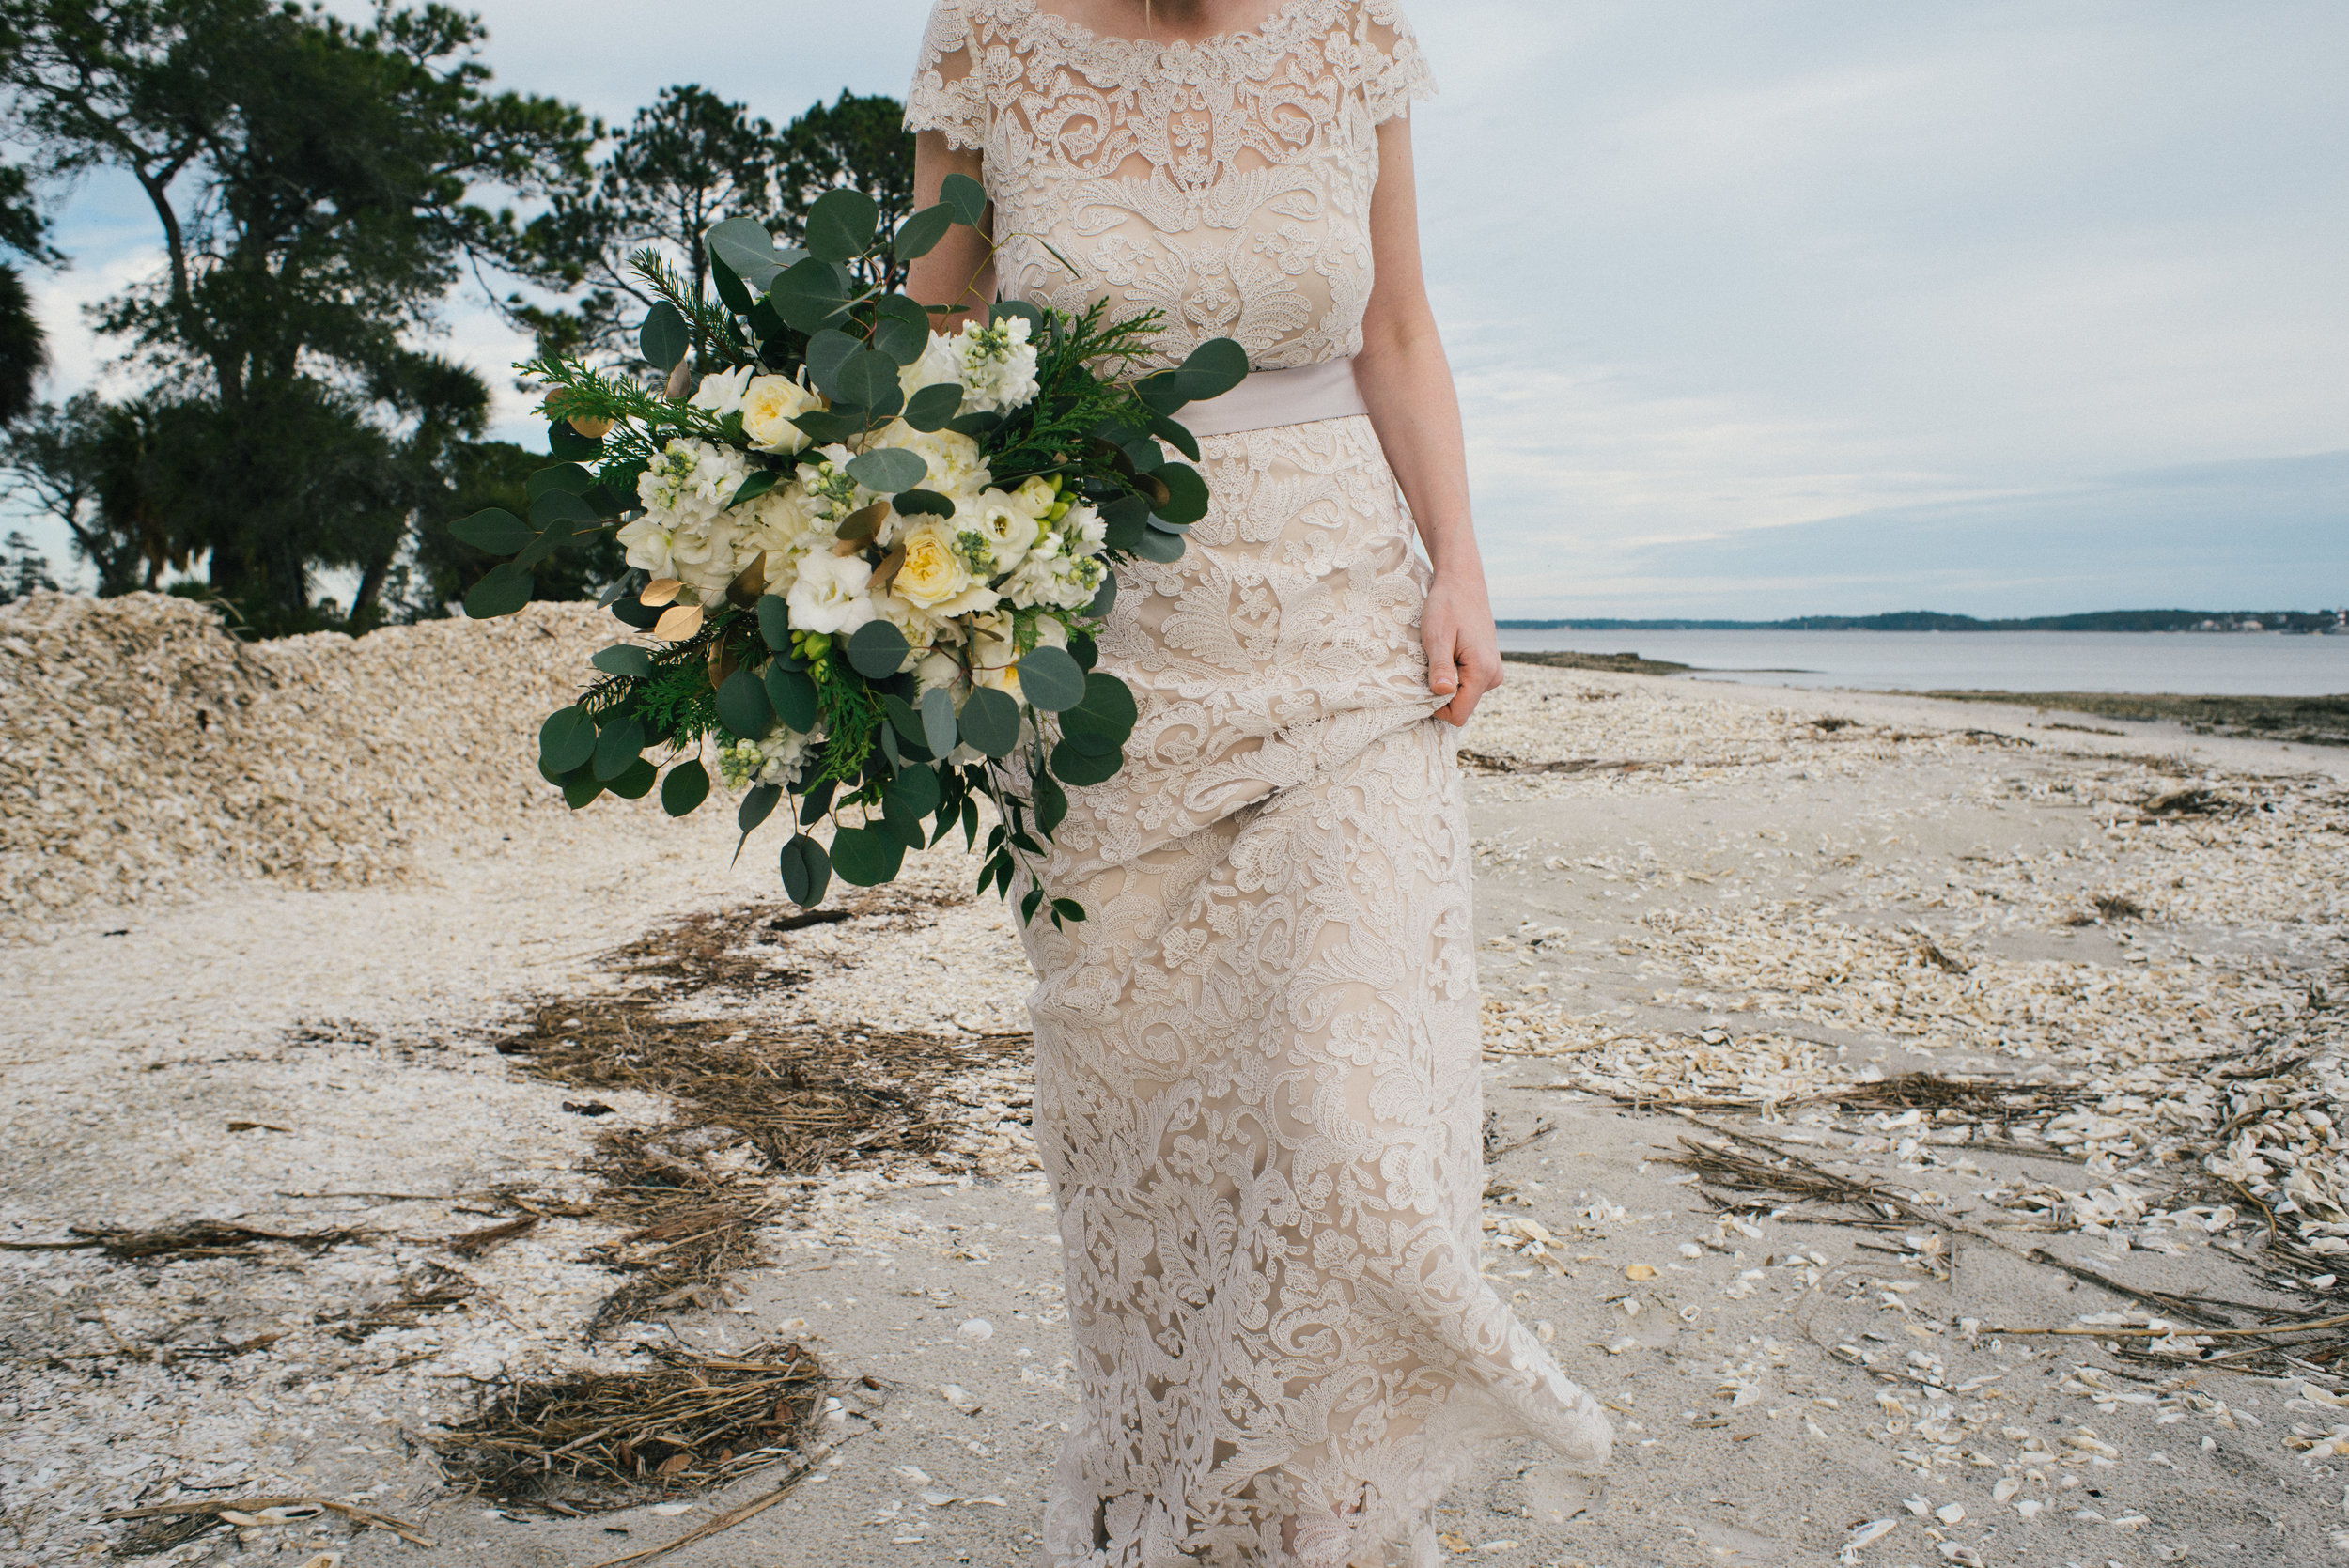 emily-and-david-daufuskie-island-wedding-december-wedding-meg-hill-photo- (102 of 728).jpg